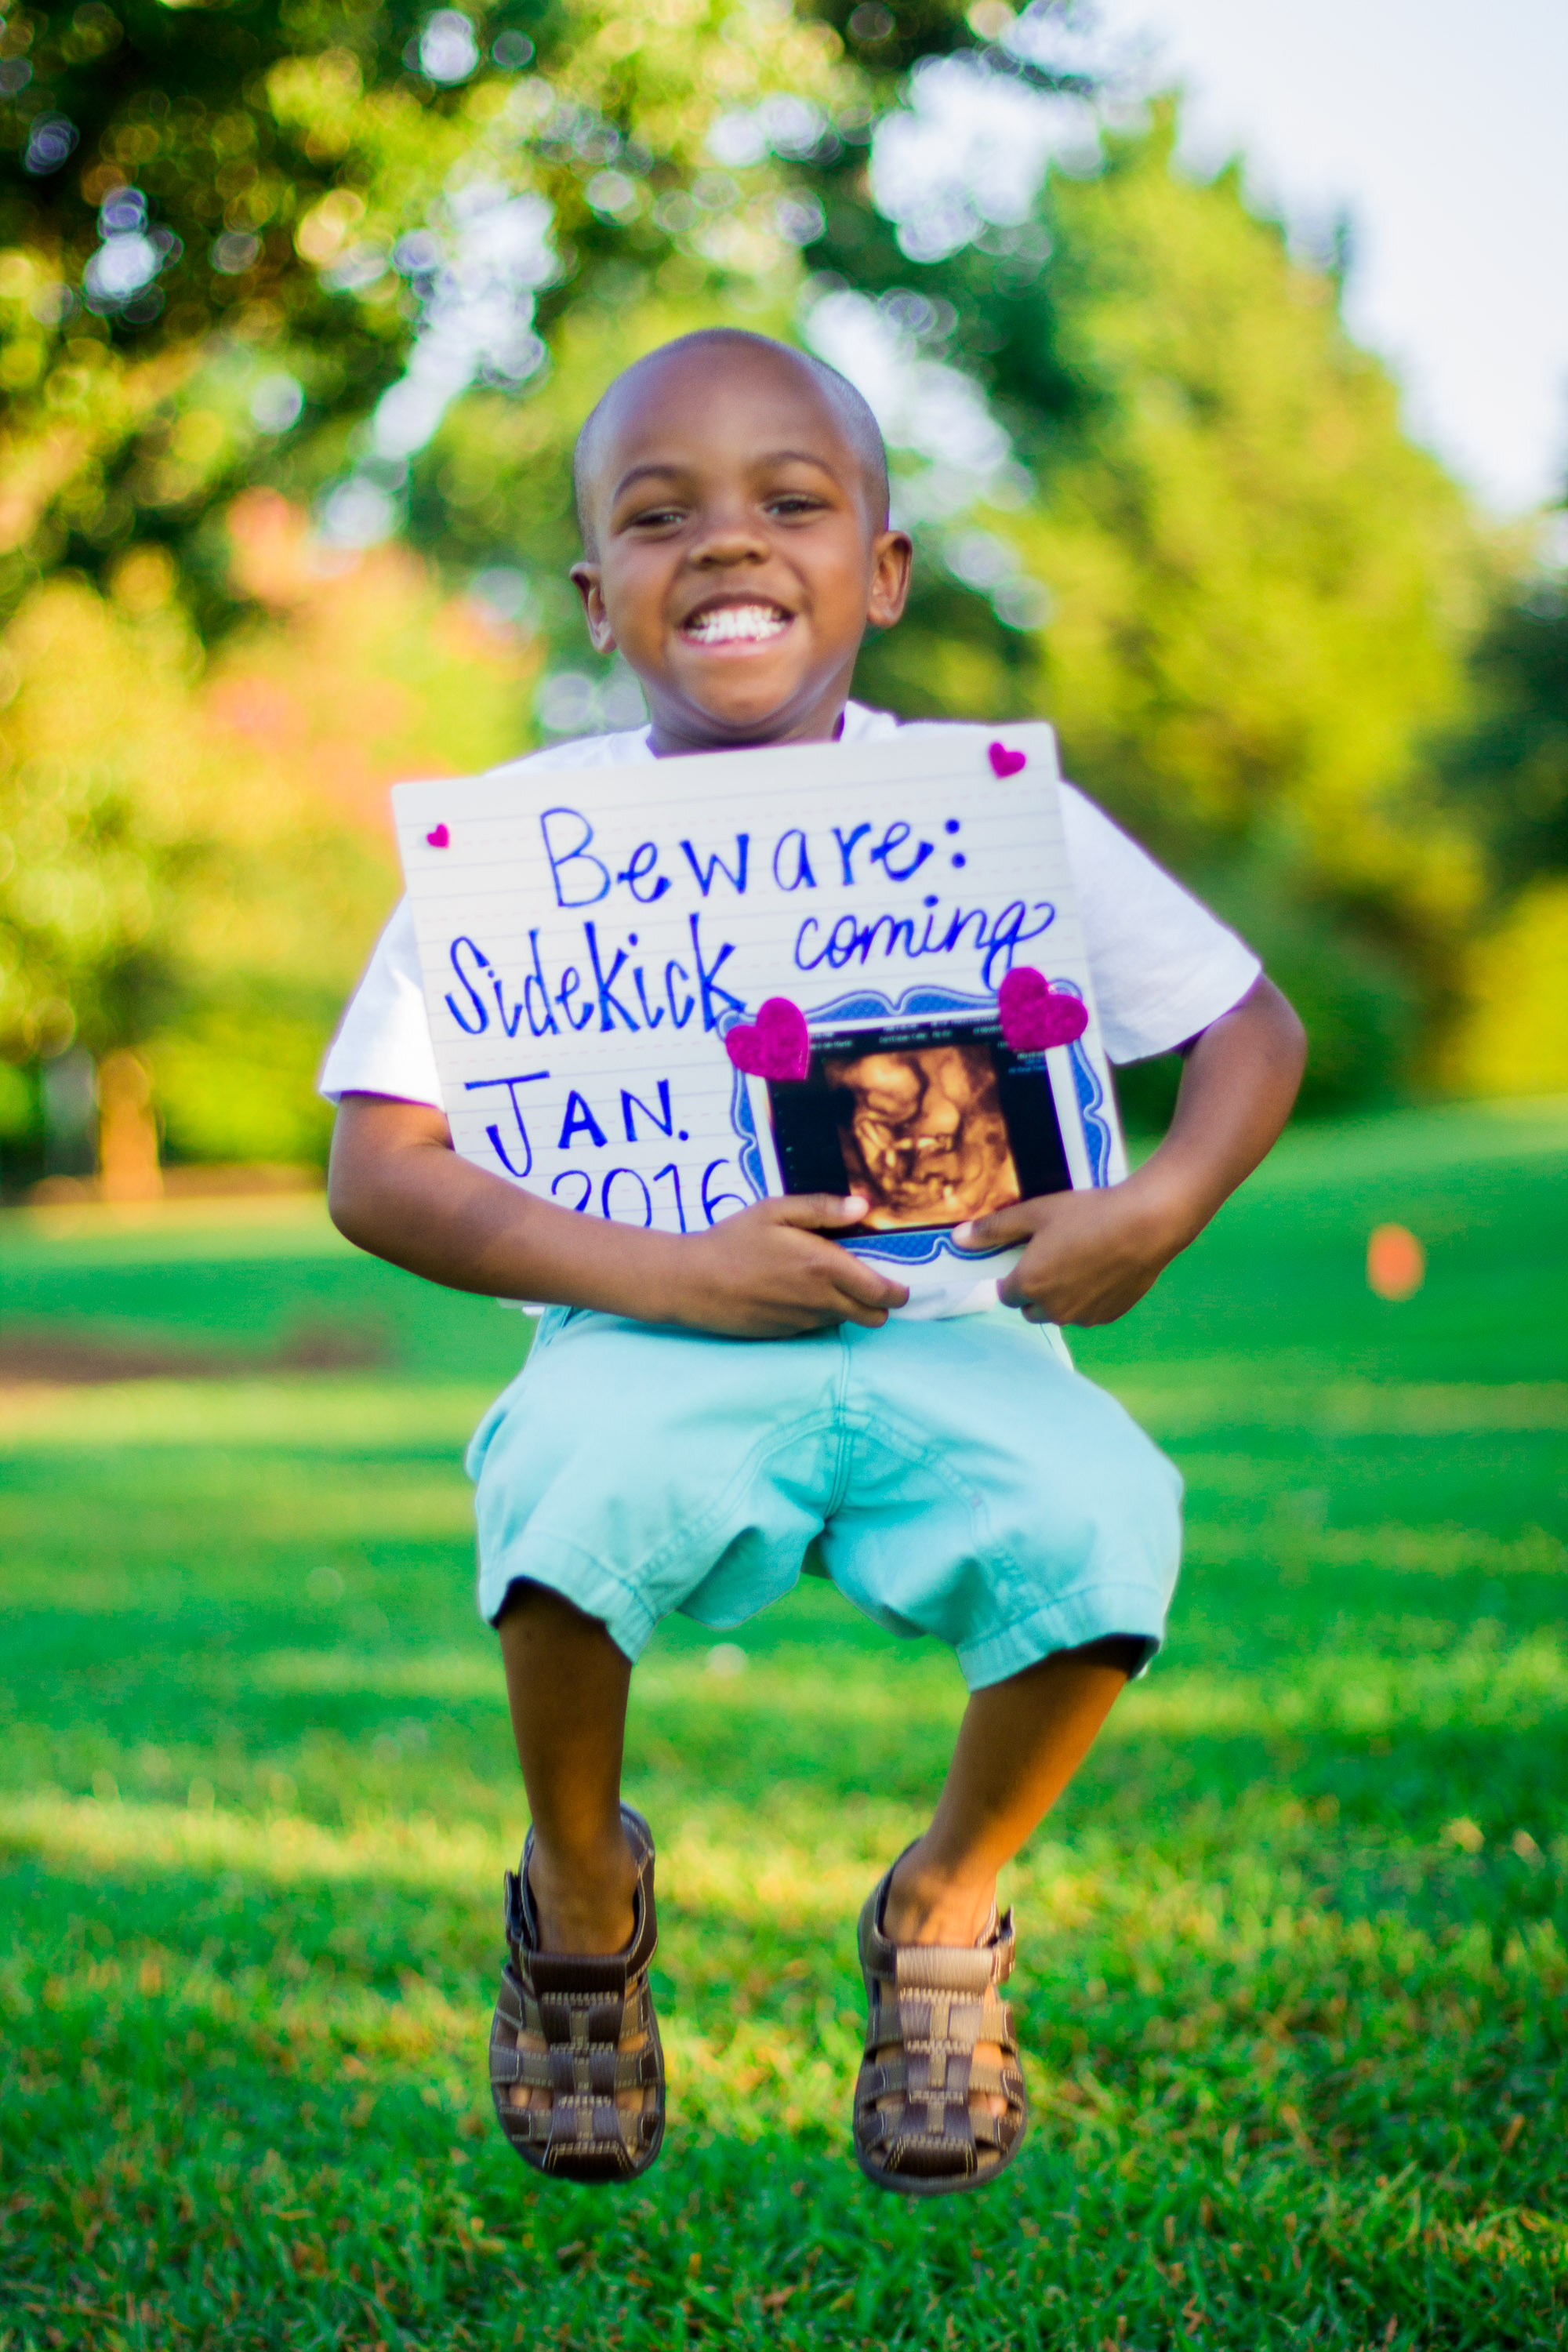 Big Brother Maternity Portraits Ideas   Criston Is Going To Be A Big Brother   Bryant Tyson Photography   www.memoriesbybryant.com